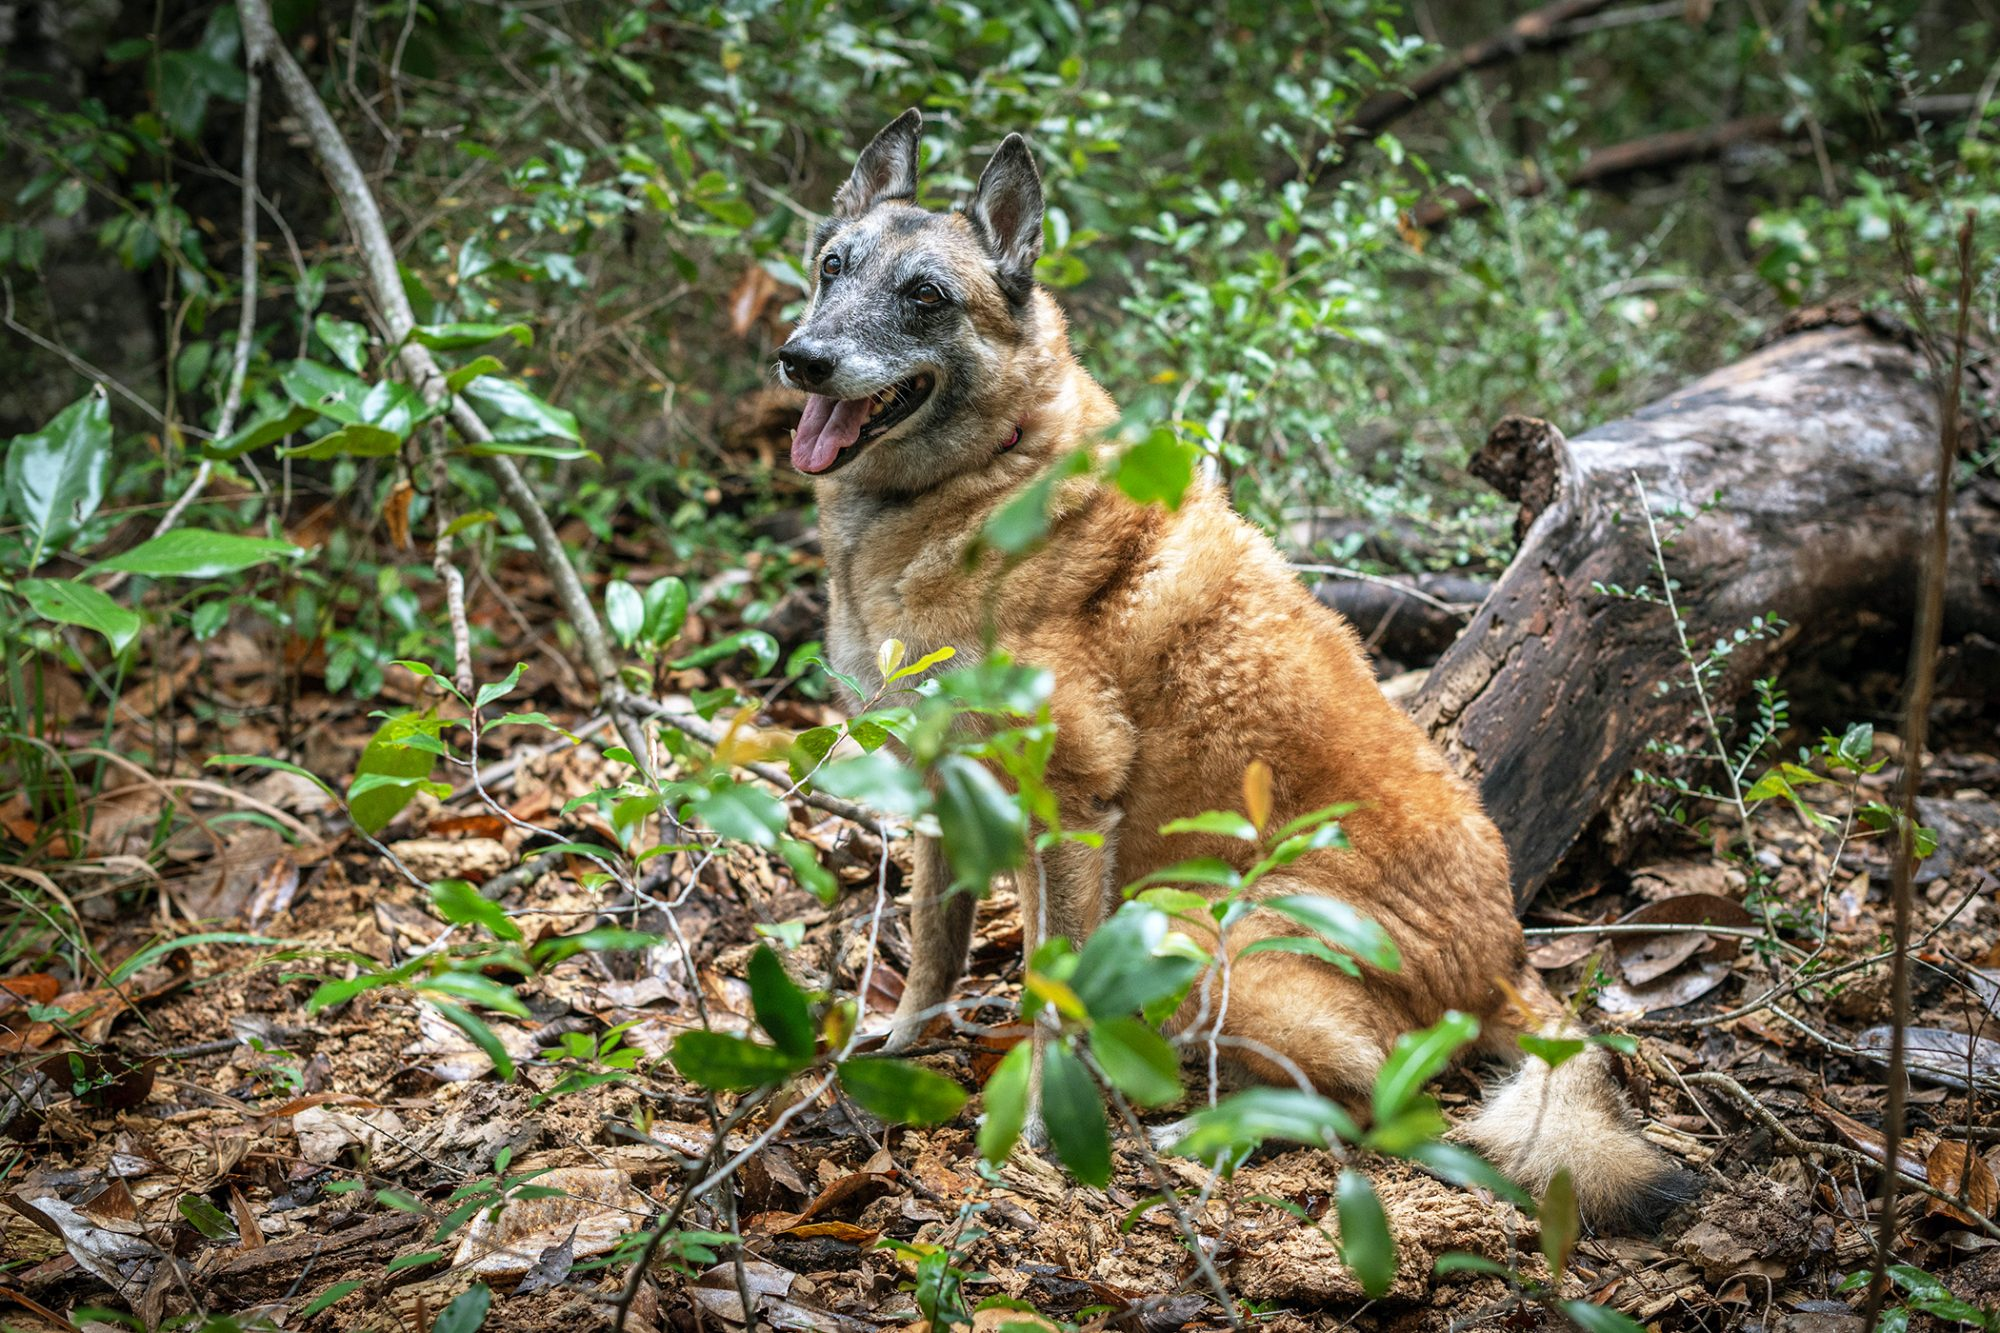 Search and rescue adult dog sits in shrubbery